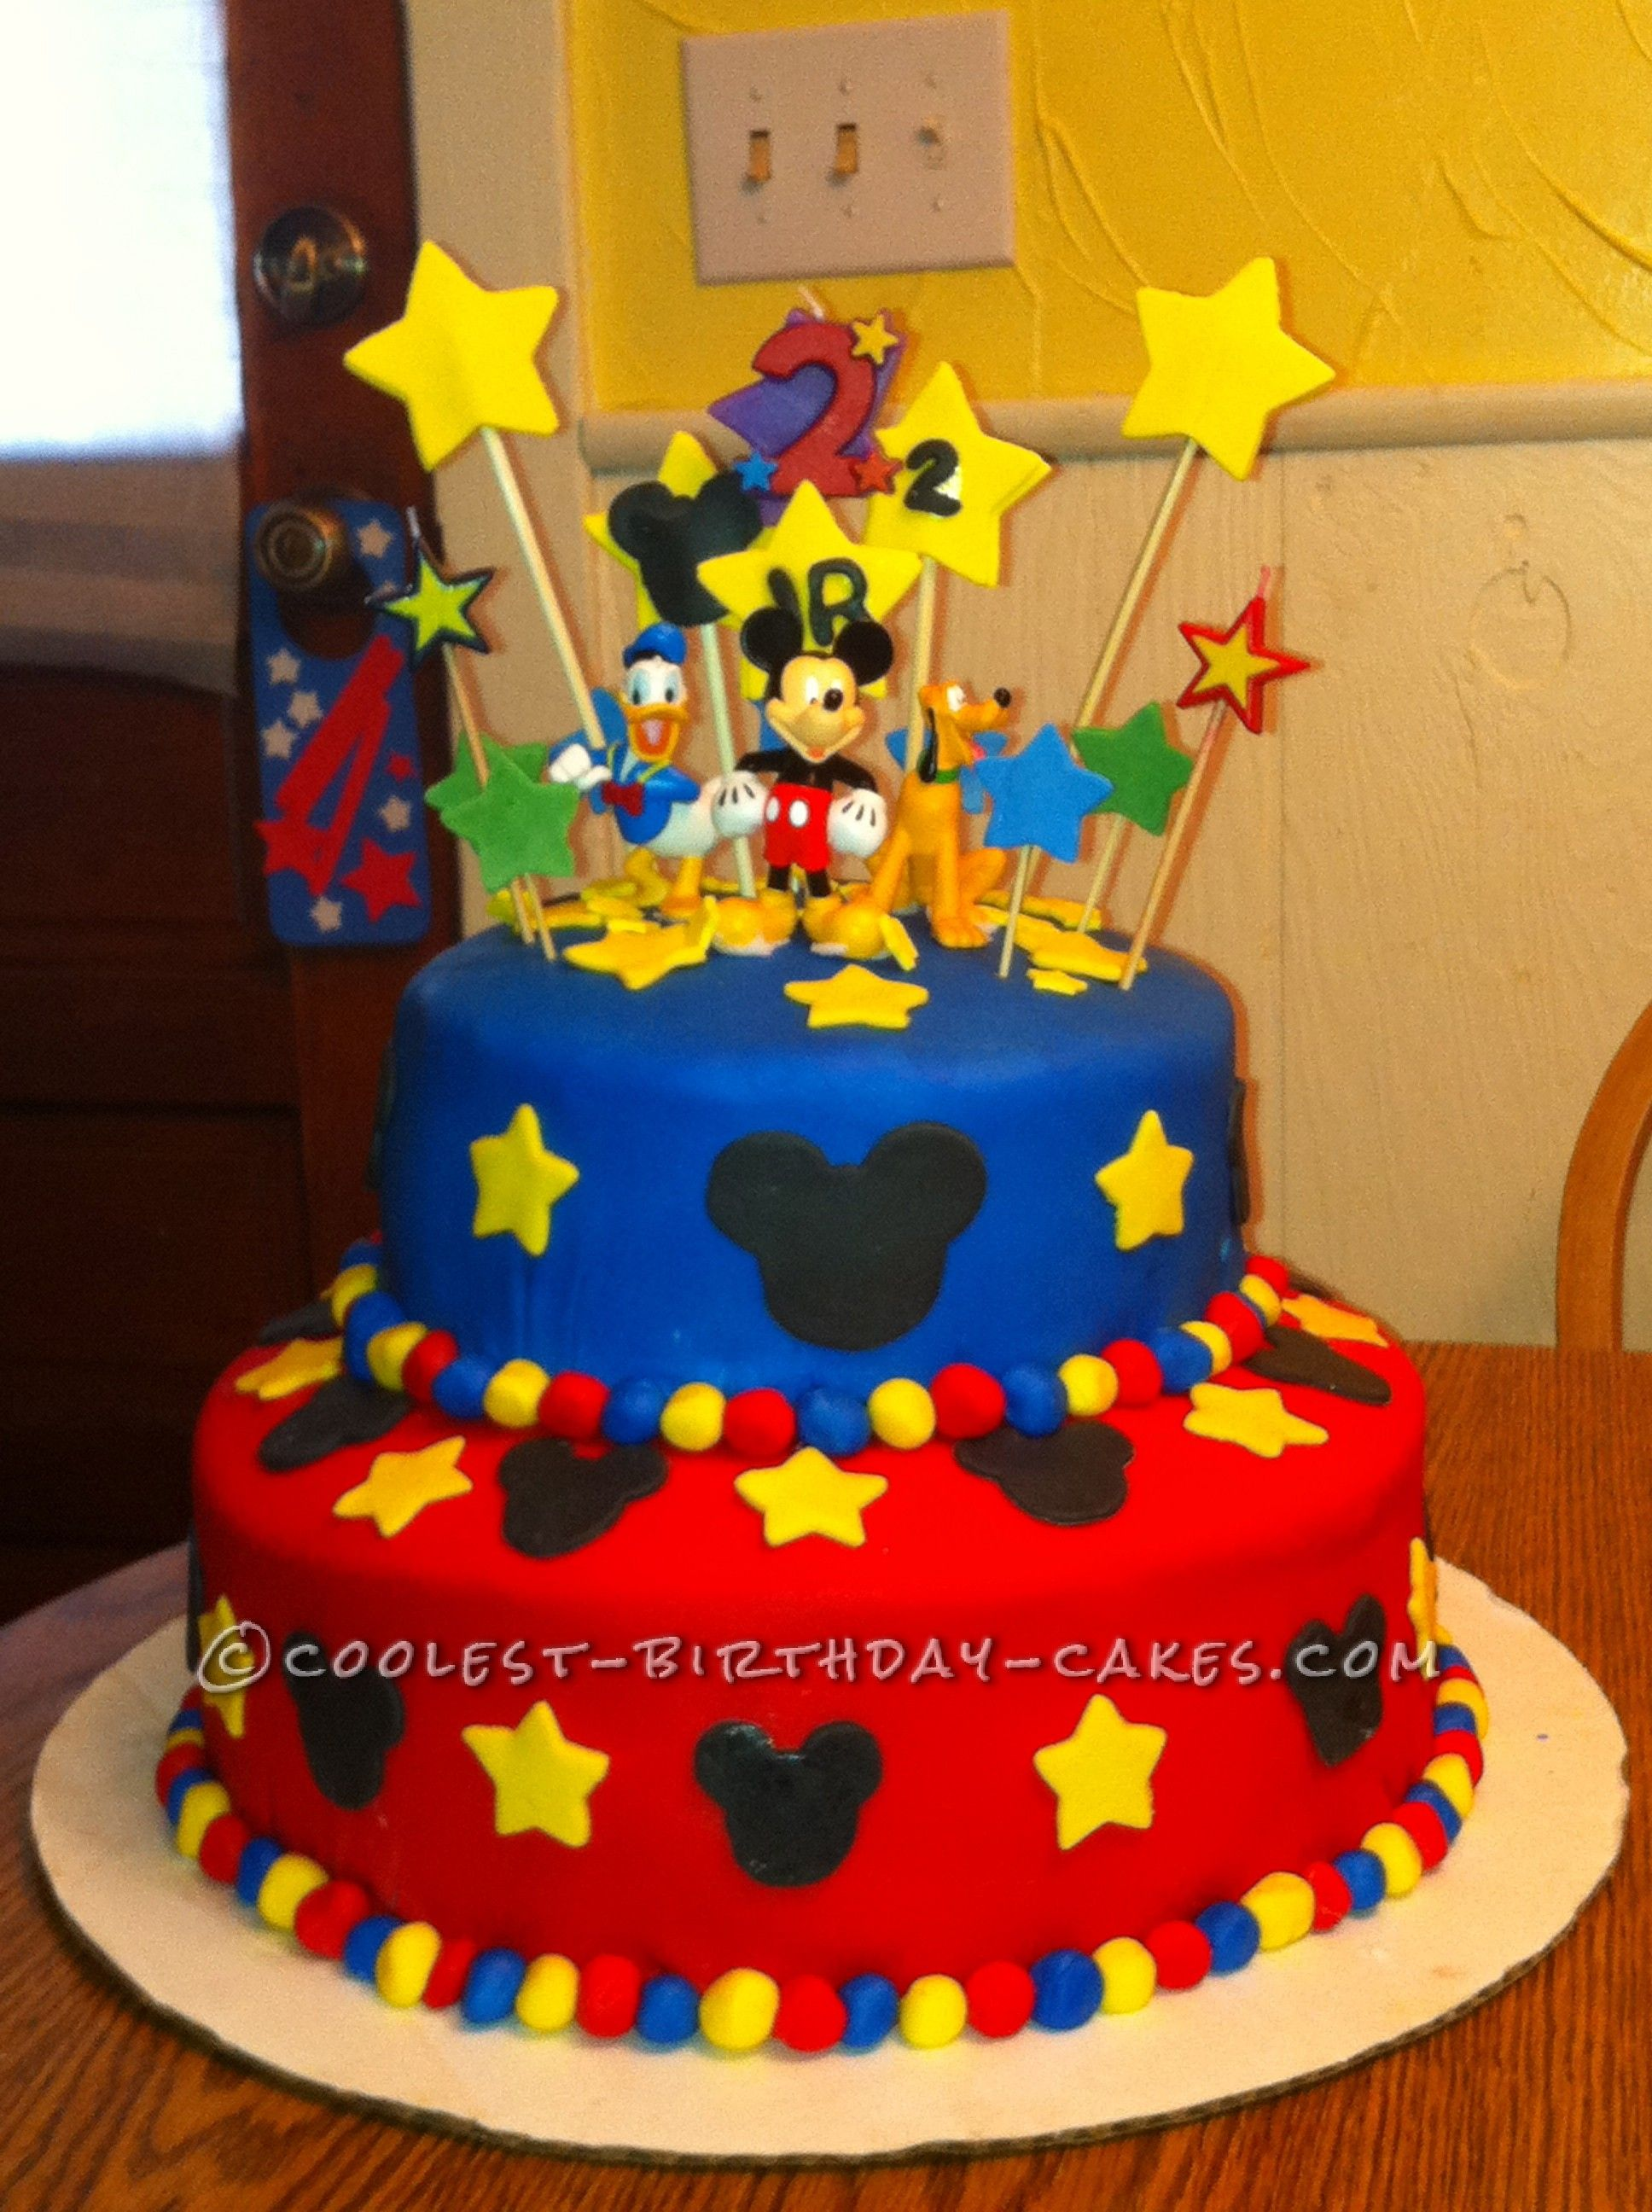 Coolest 1000 Homemade Birthday Cakes You Can Make Mickey mouse